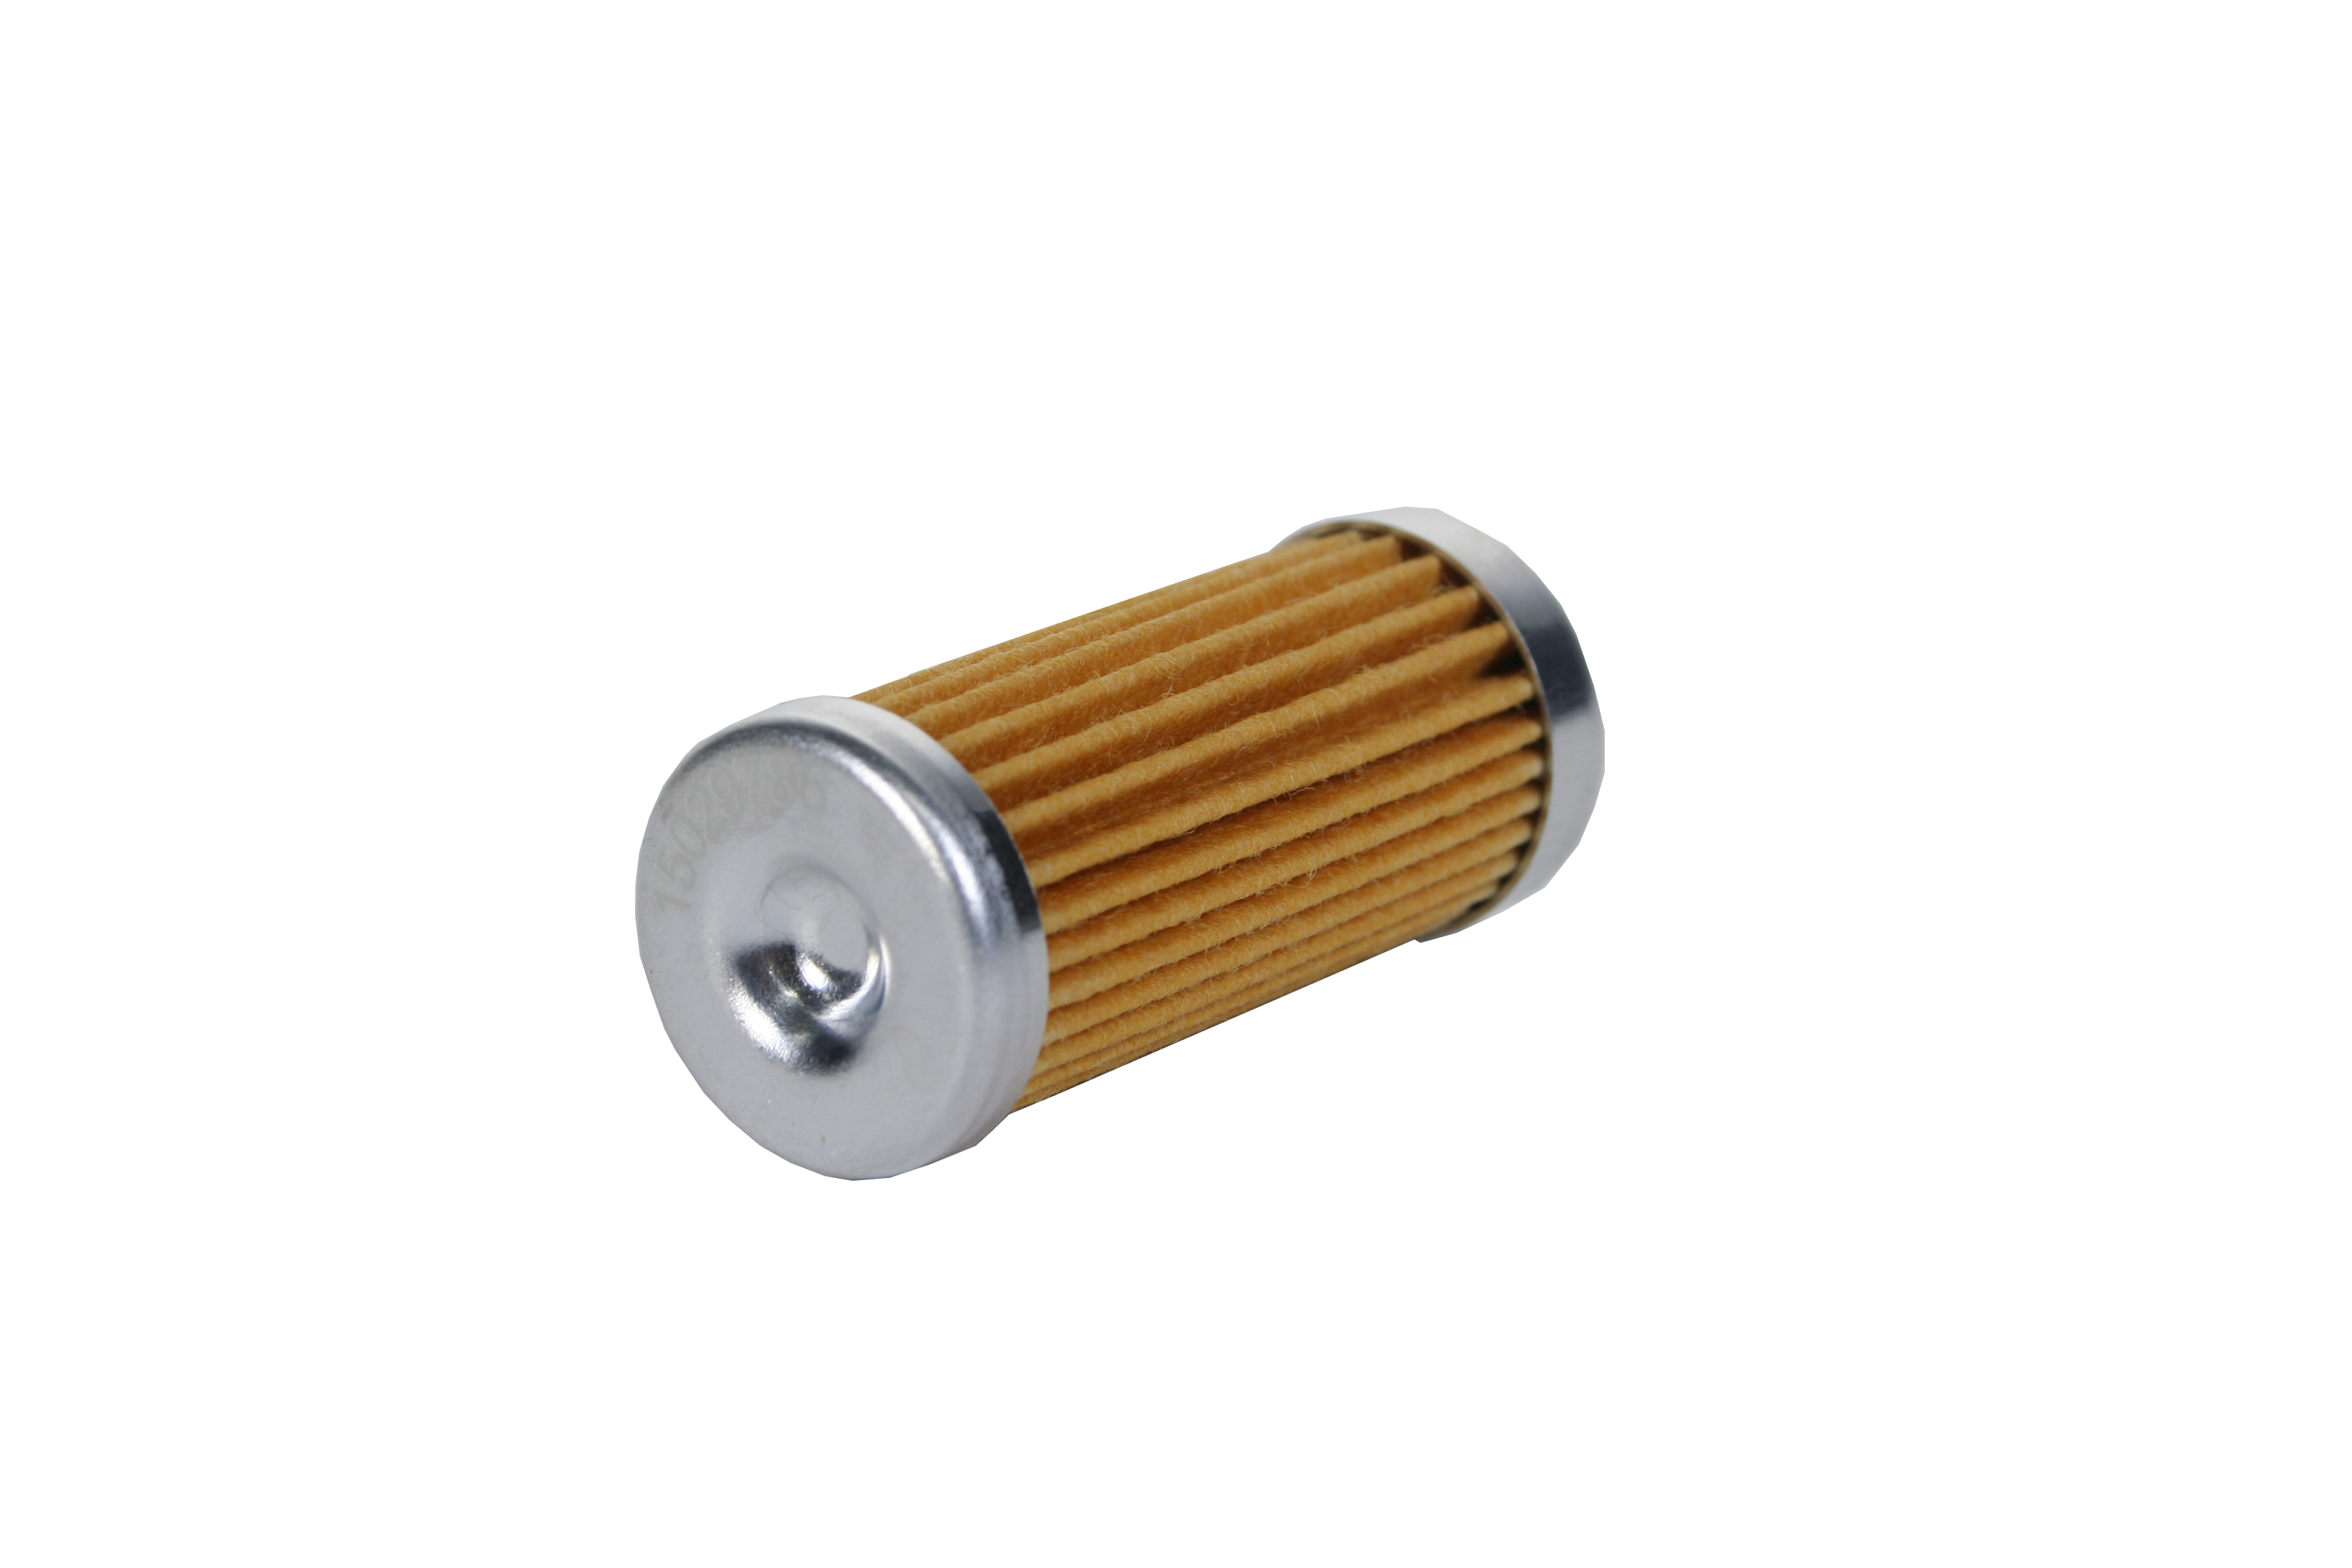 40 Micron Element For 3 8 Npt Filters Aeromotive Inc Russell Fuel